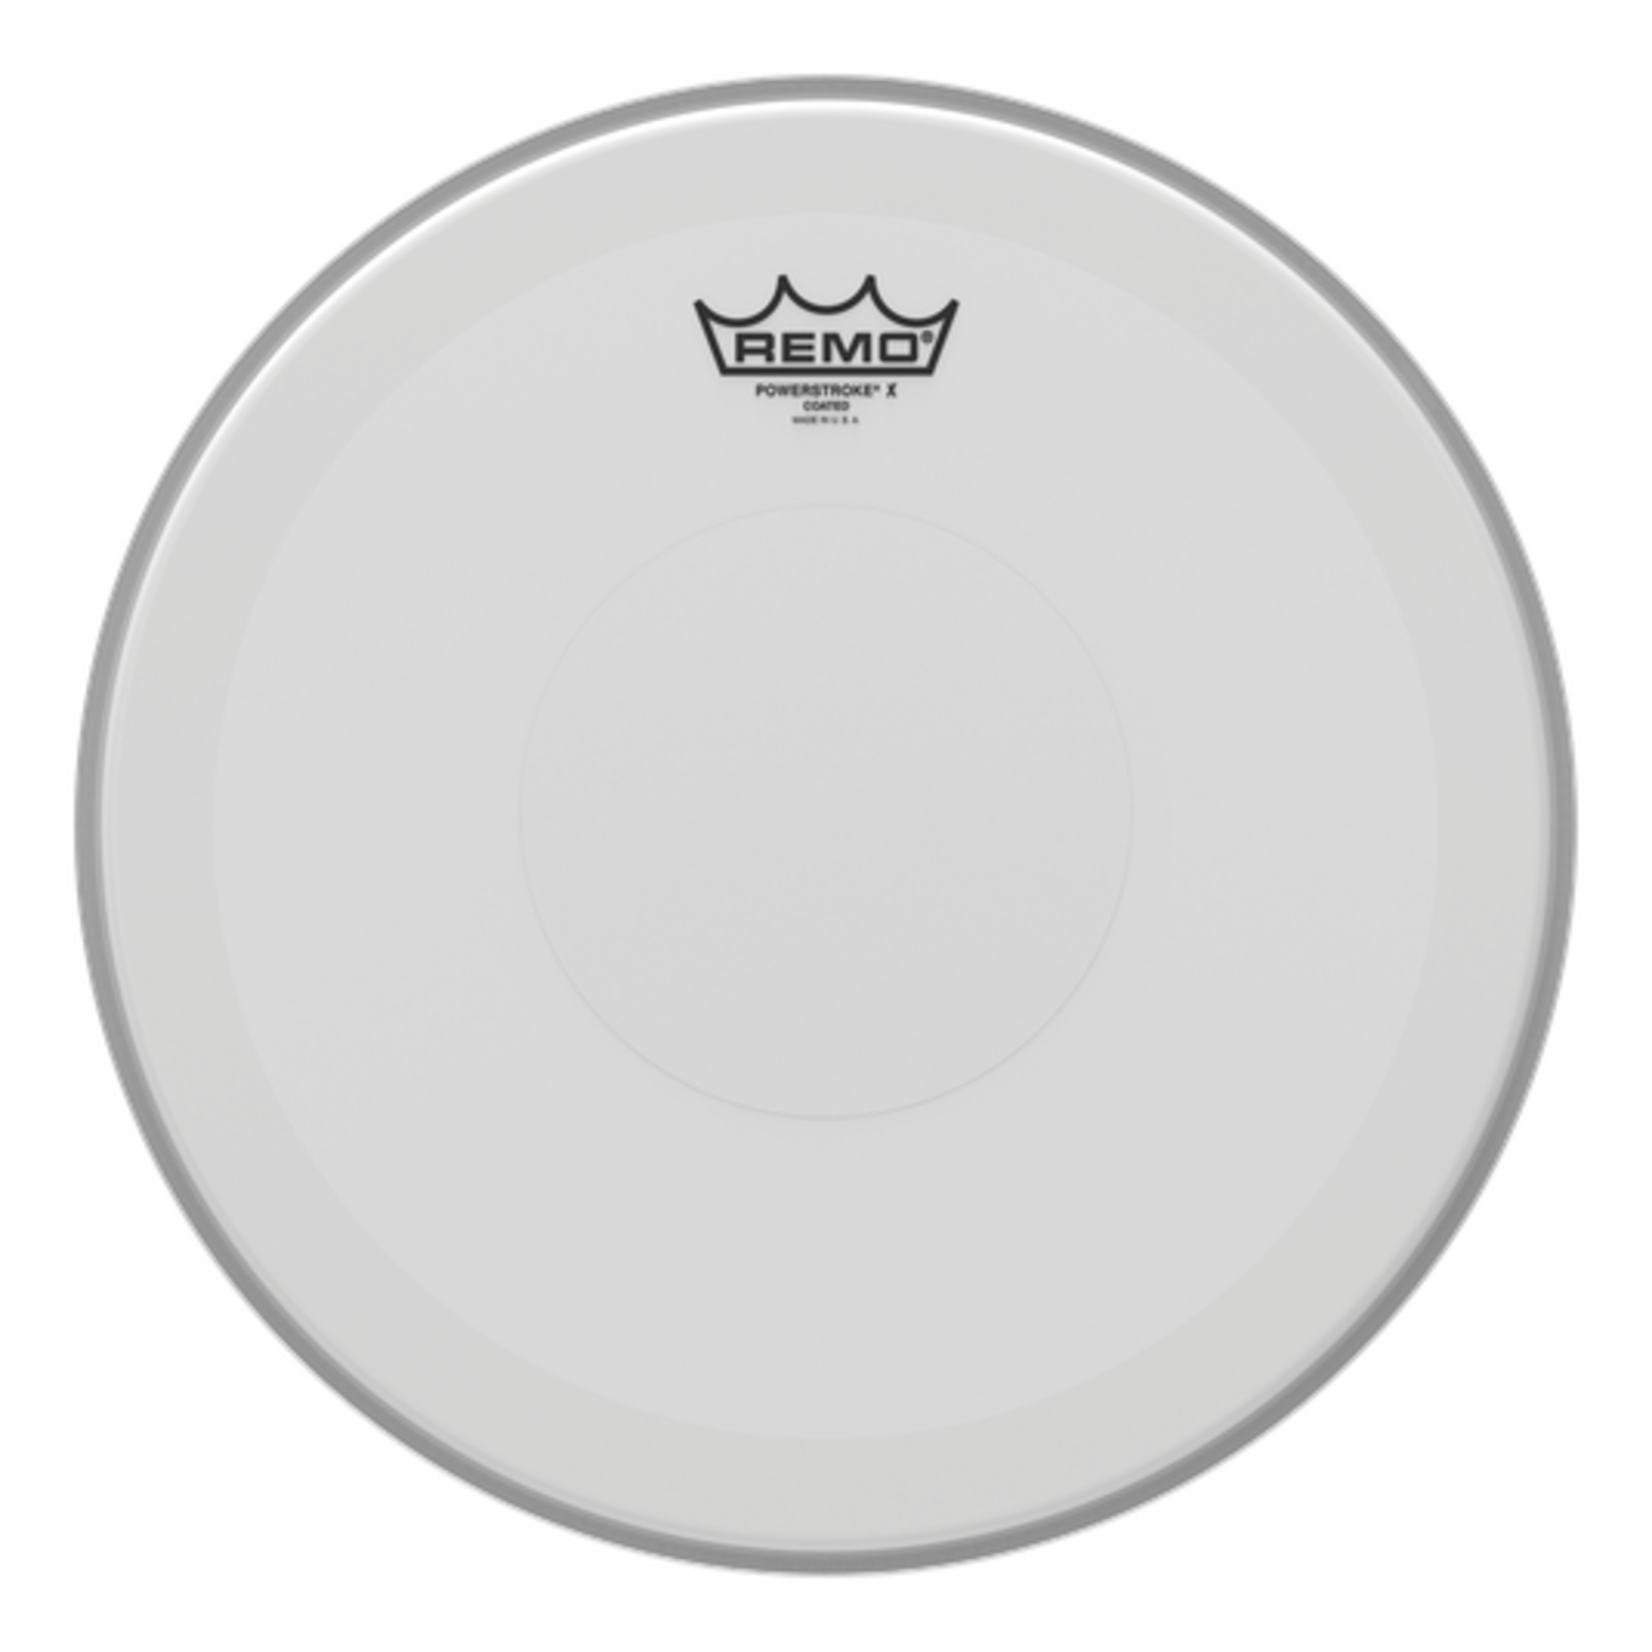 """Remo REMO 14"""" POWERSTROKE X COATED WITH DOT PX0114C2"""